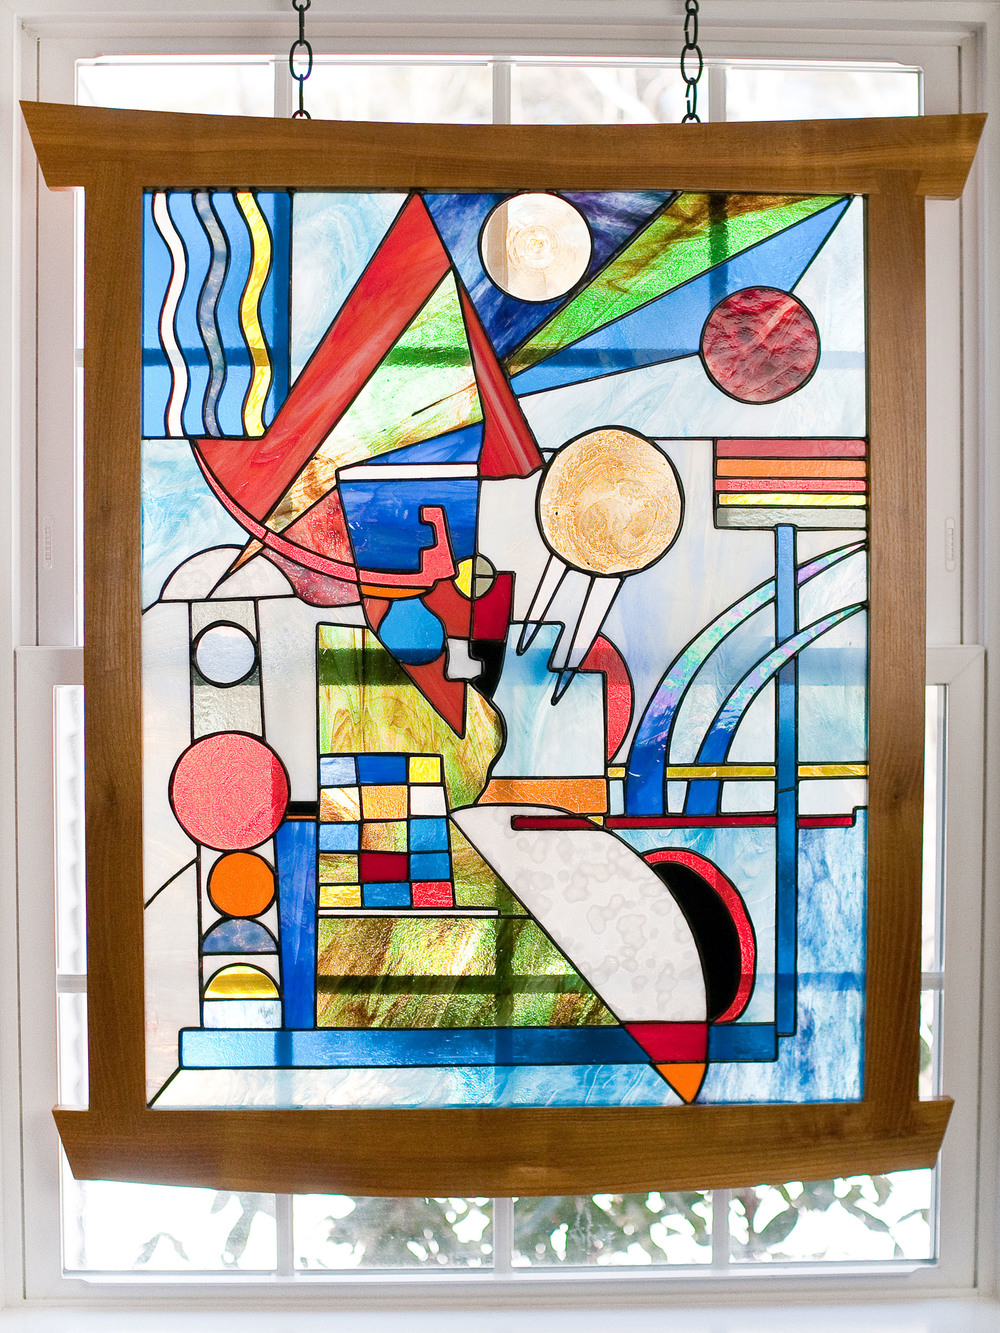 Stained glass frame 1.jpg